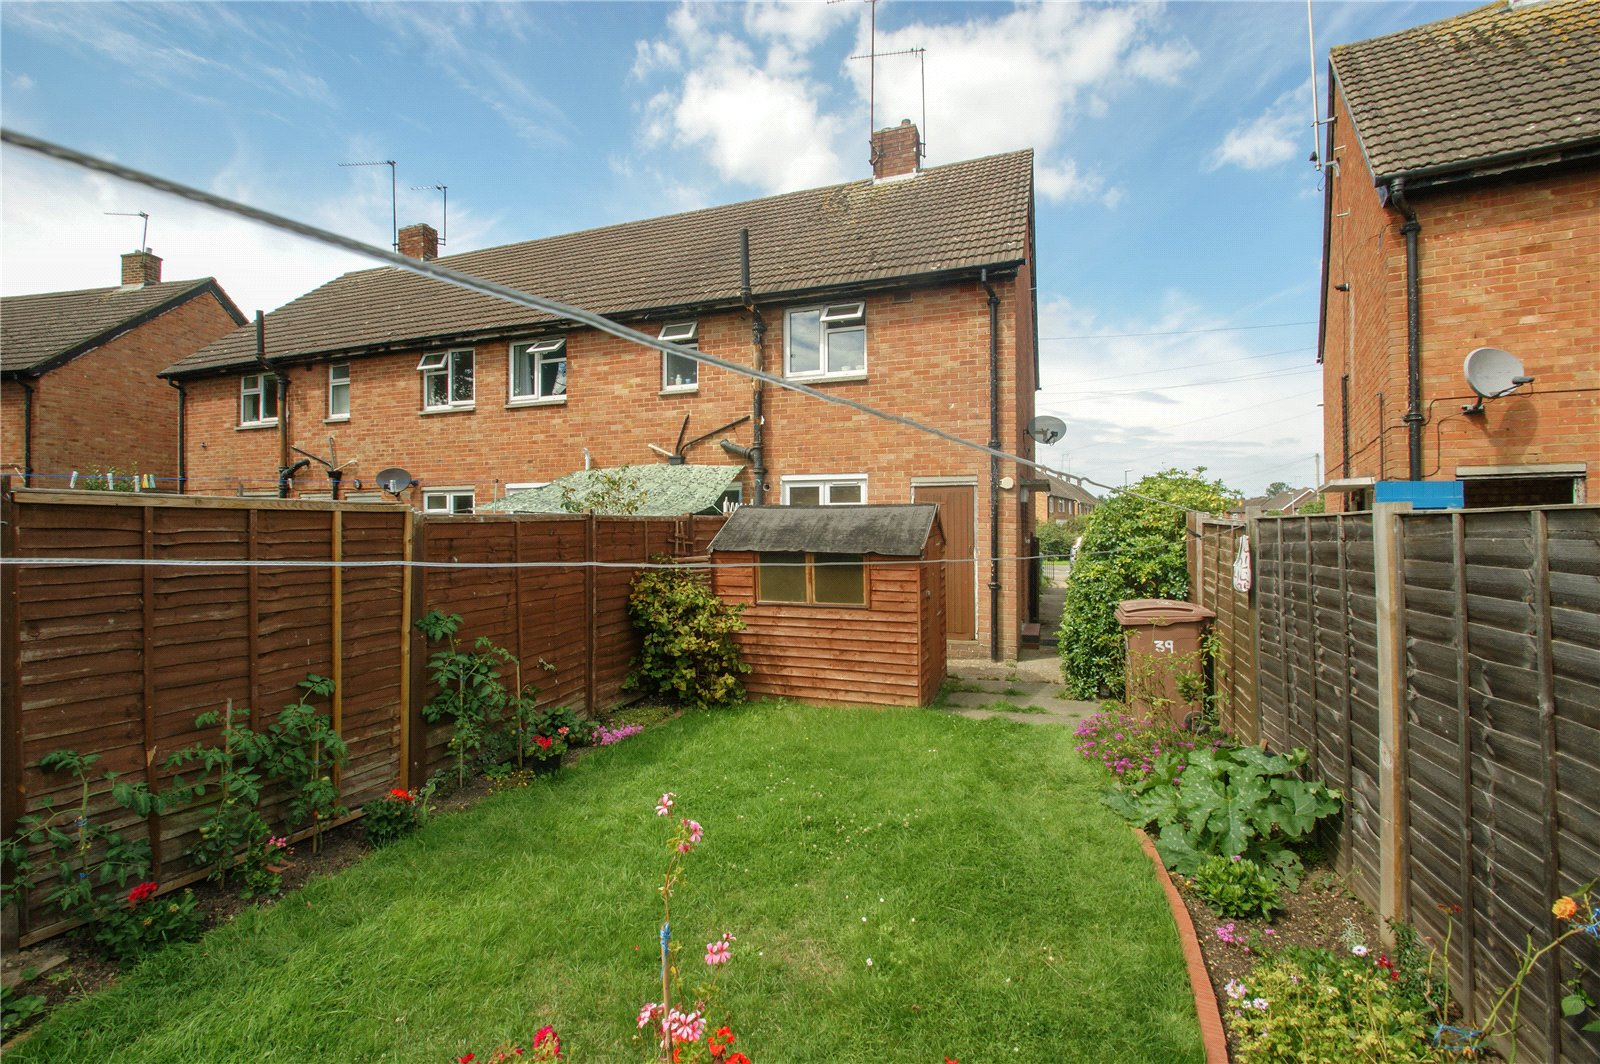 2 Bedrooms Maisonette Flat for sale in Longs Way, Wokingham, Berkshire, RG40